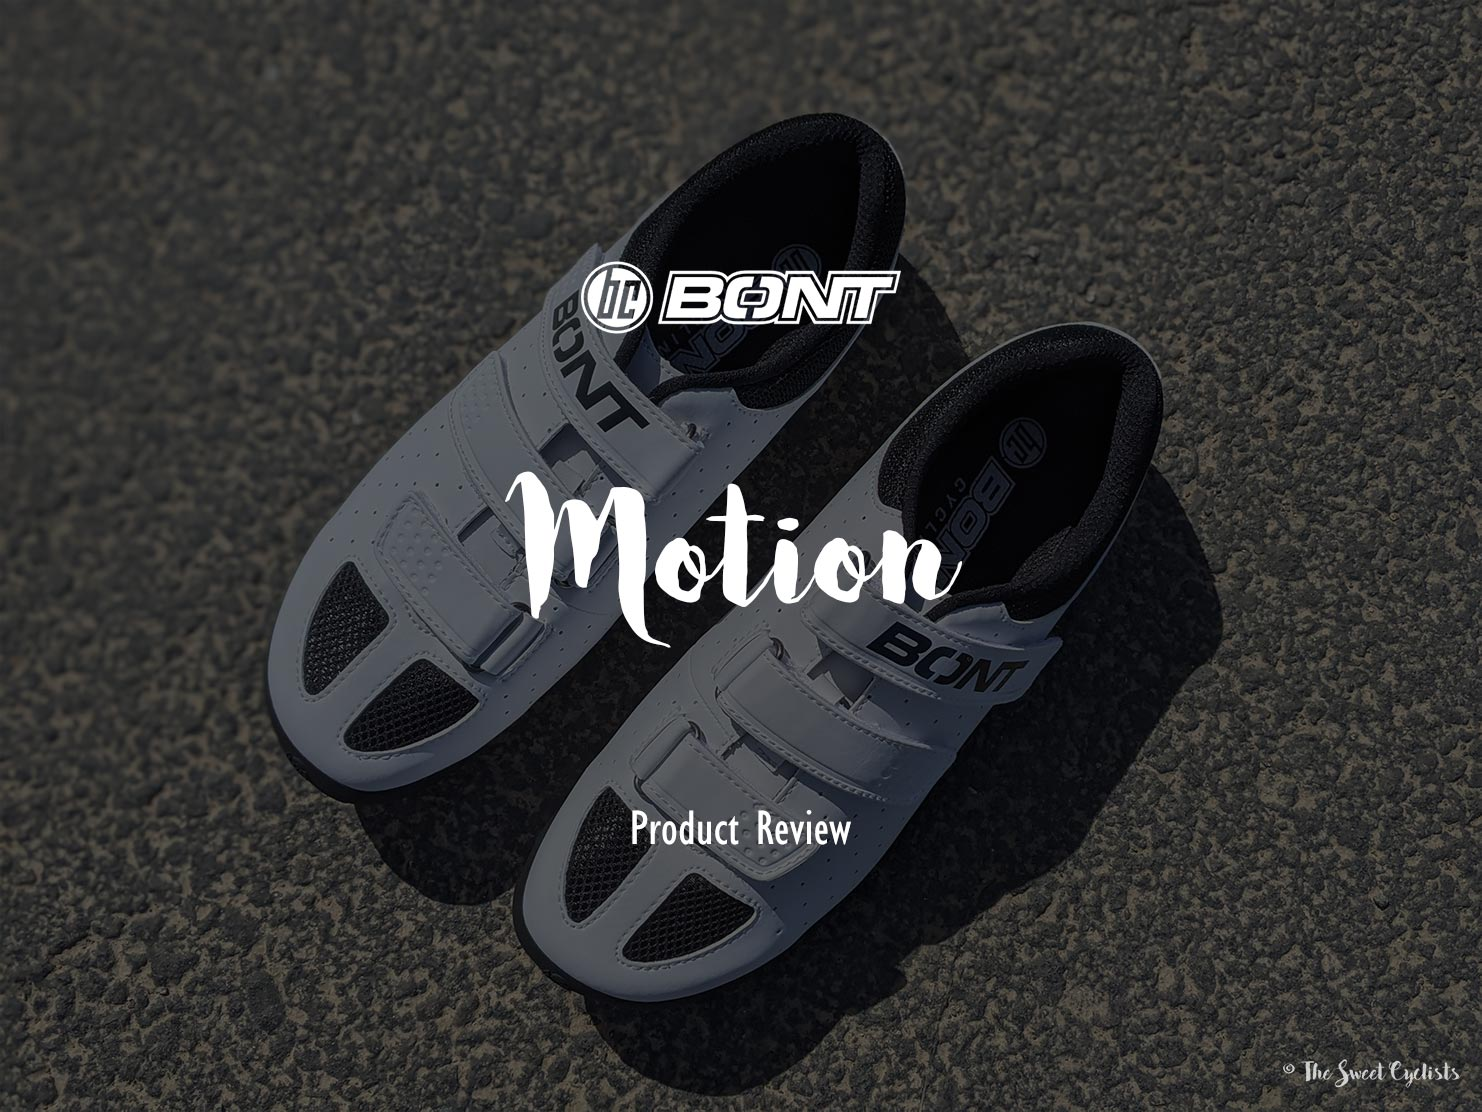 Budget friendly performance cycling shoes